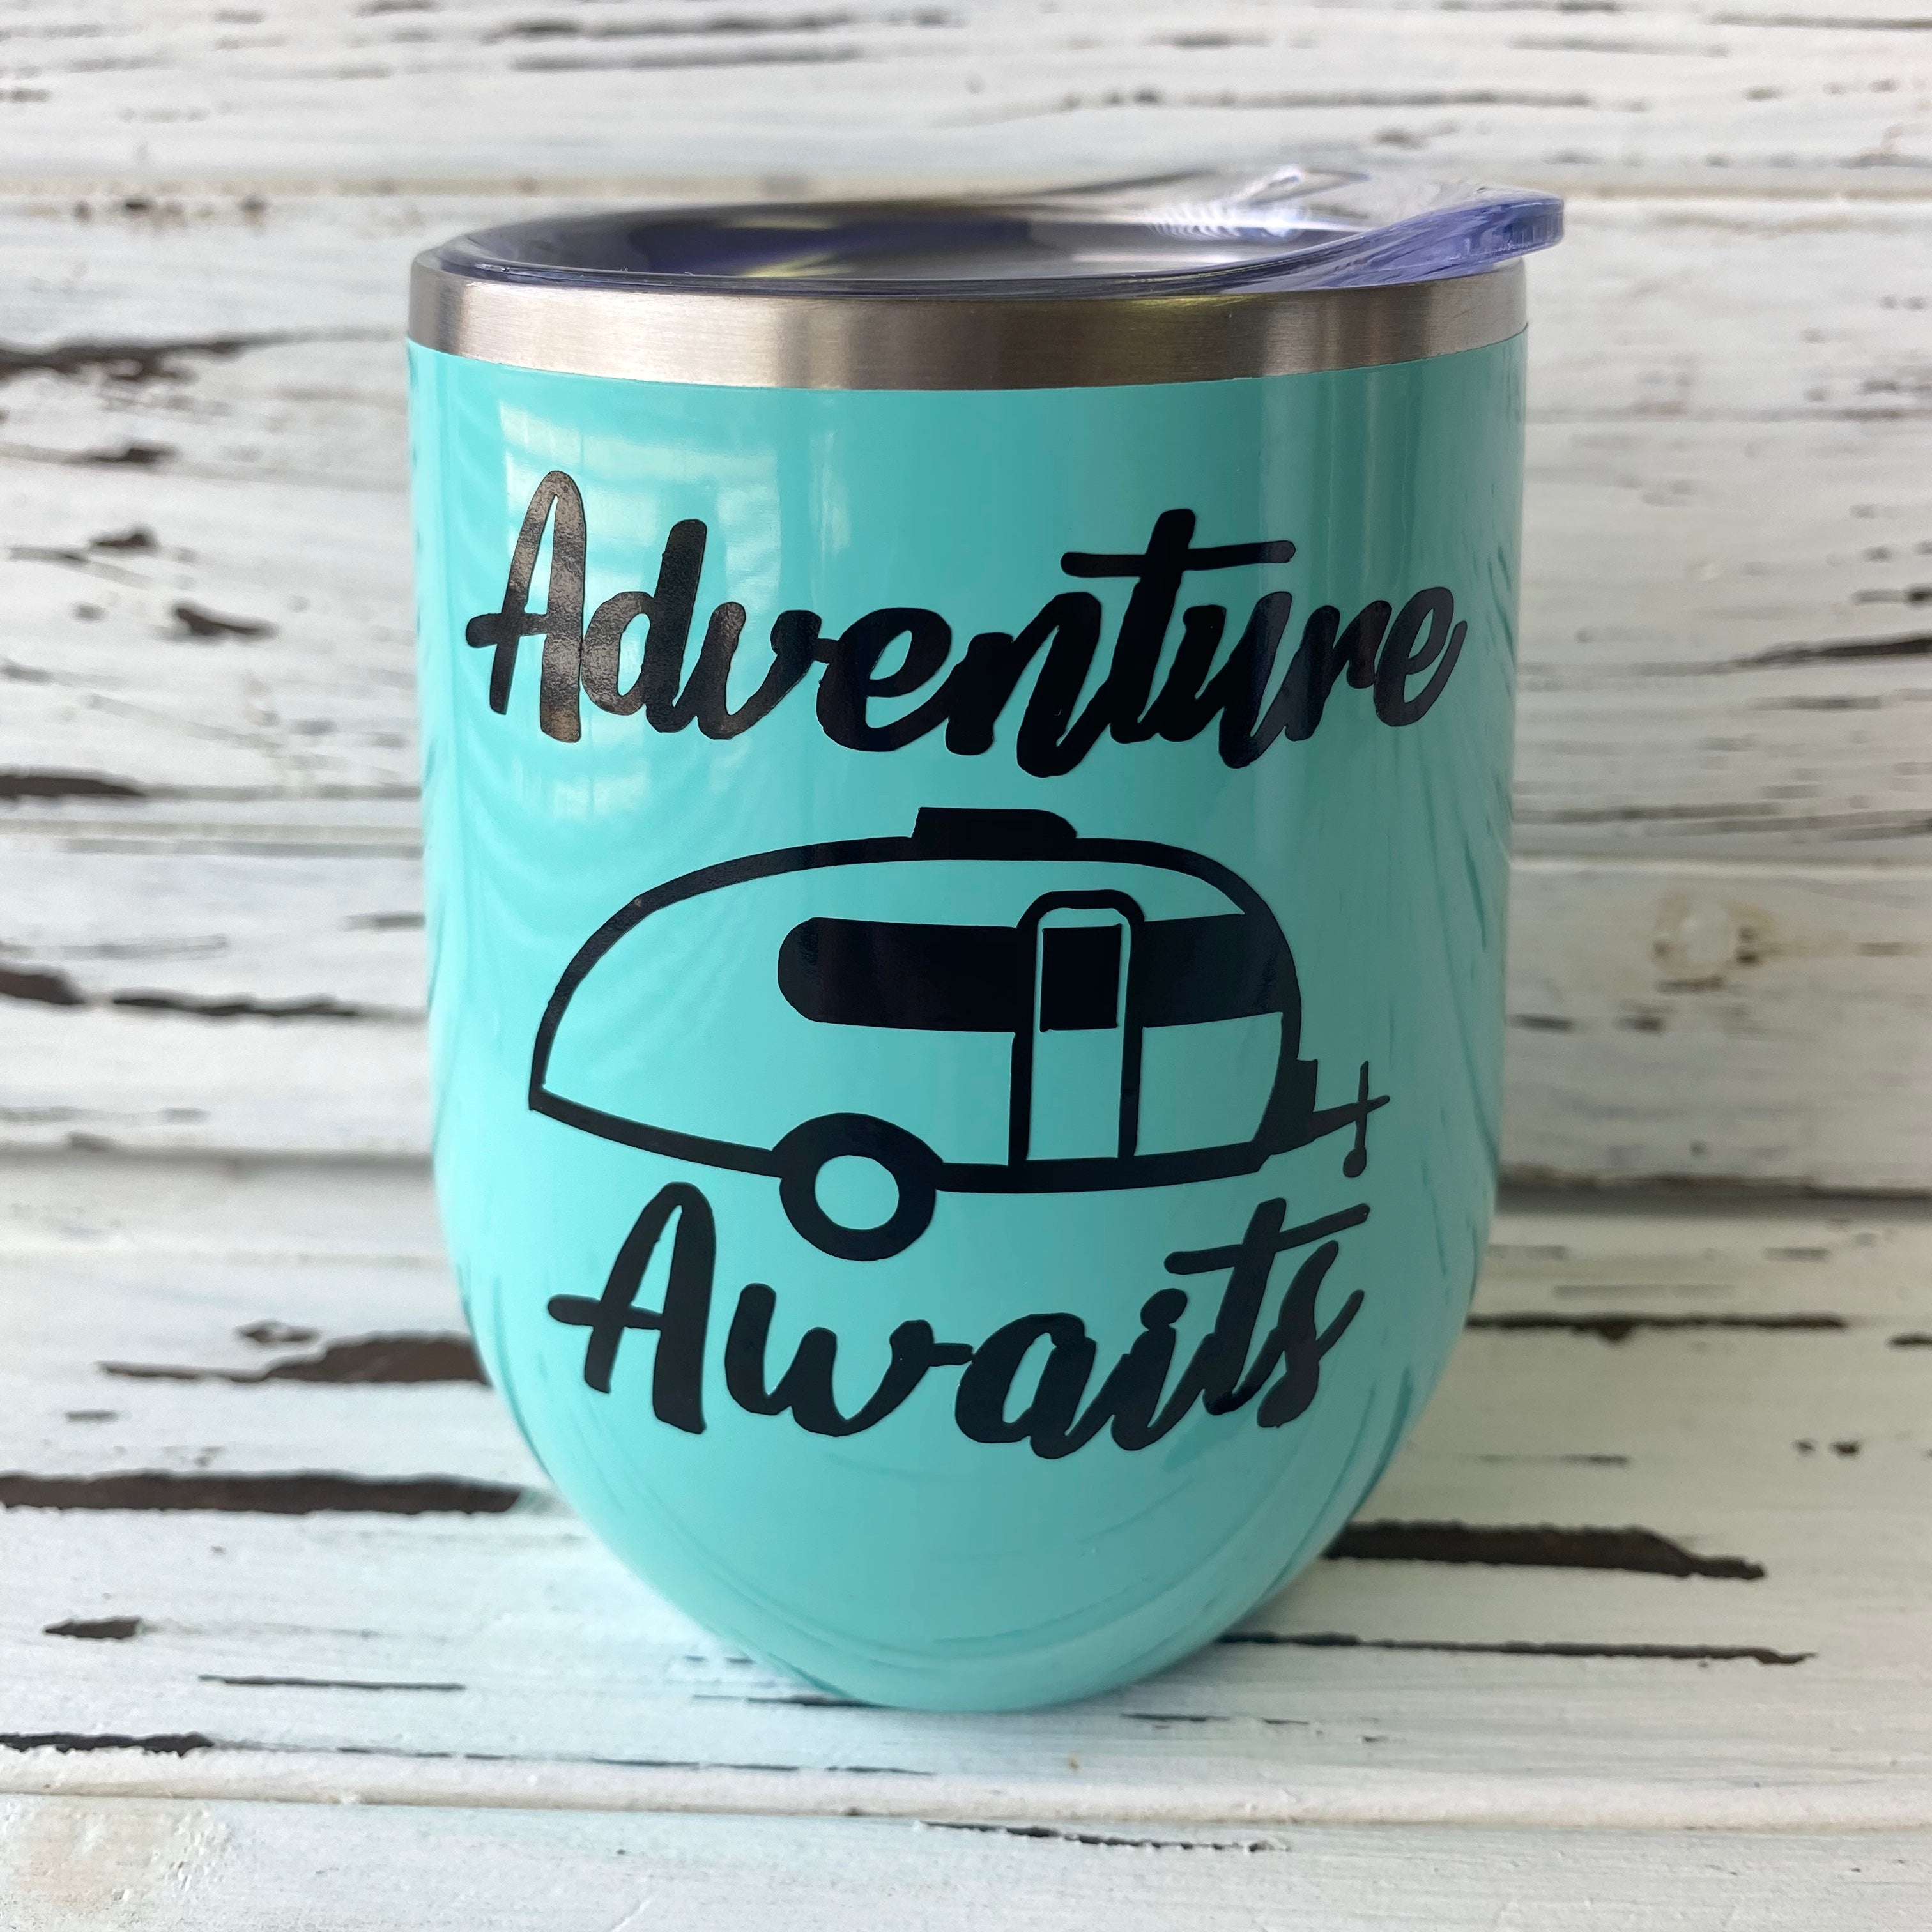 I/'d Rather Be Camping Pop-Up Camper Stainless Steel Wine Tumbler